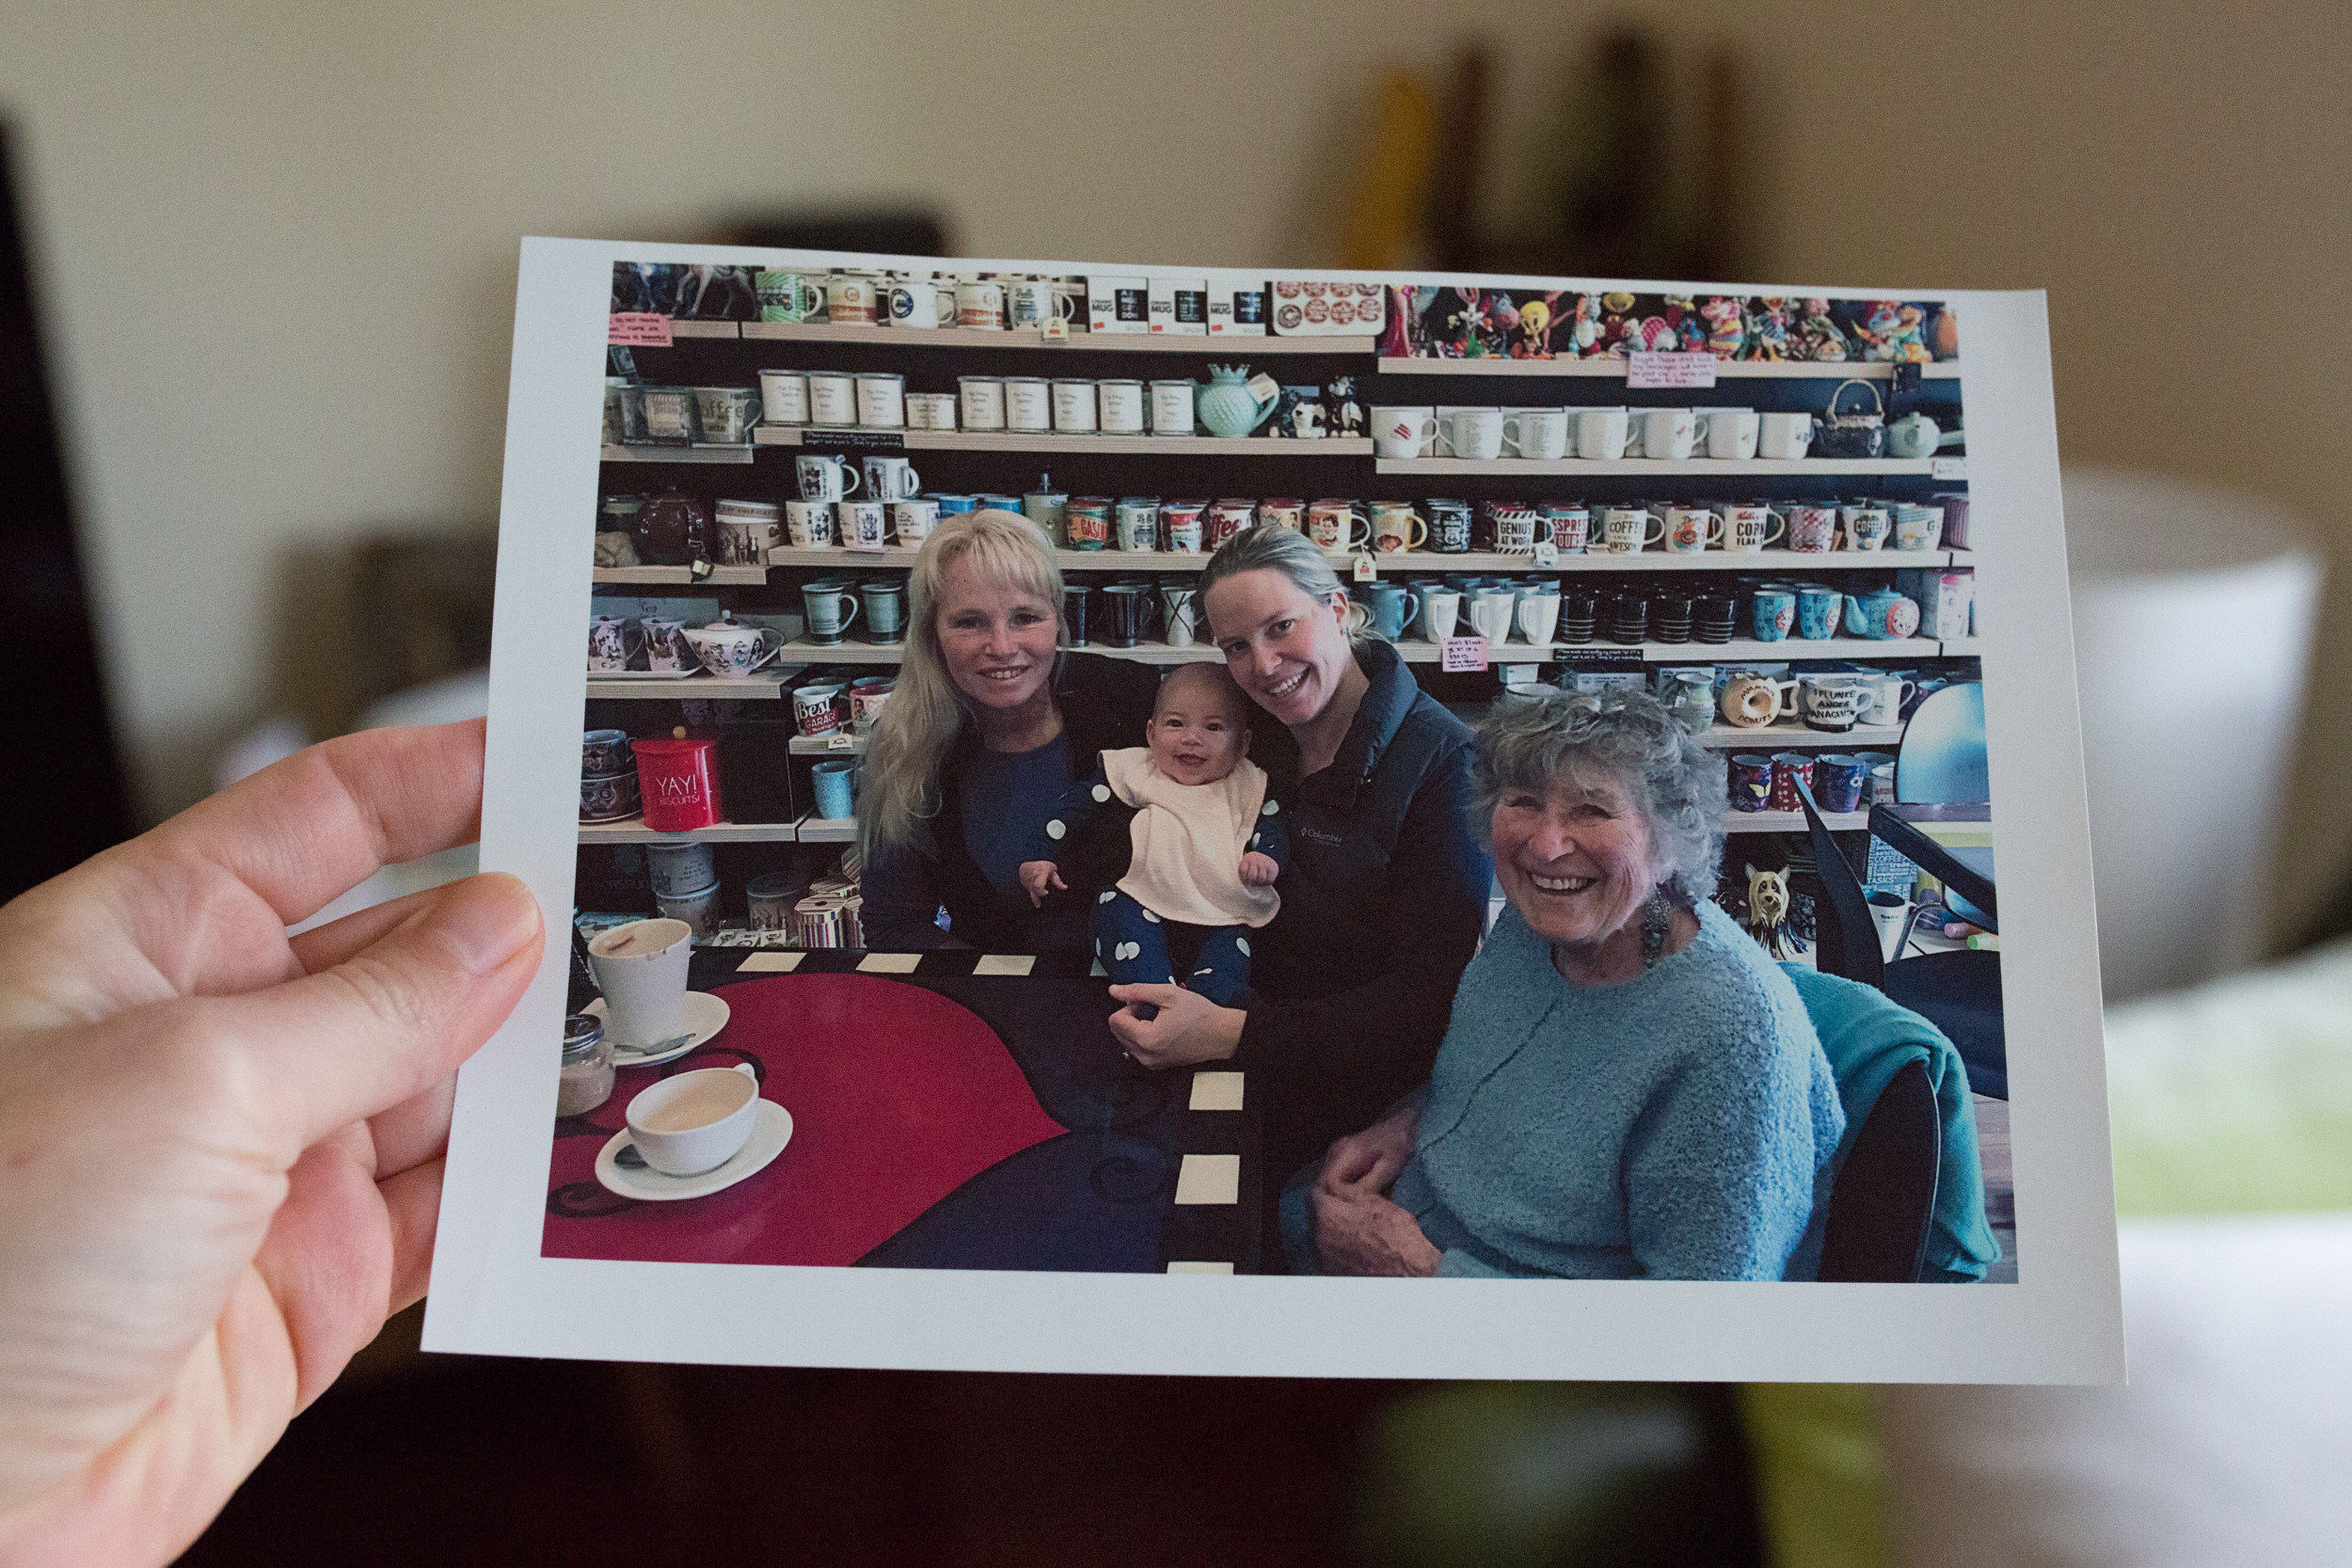 Sally spending some time with family - her mother Rita Baldwin, daughter Kathy and granddaughter Ella-Rose - at the Bright Lolly Shop, 2018, Image: supplied by Sally Hall.